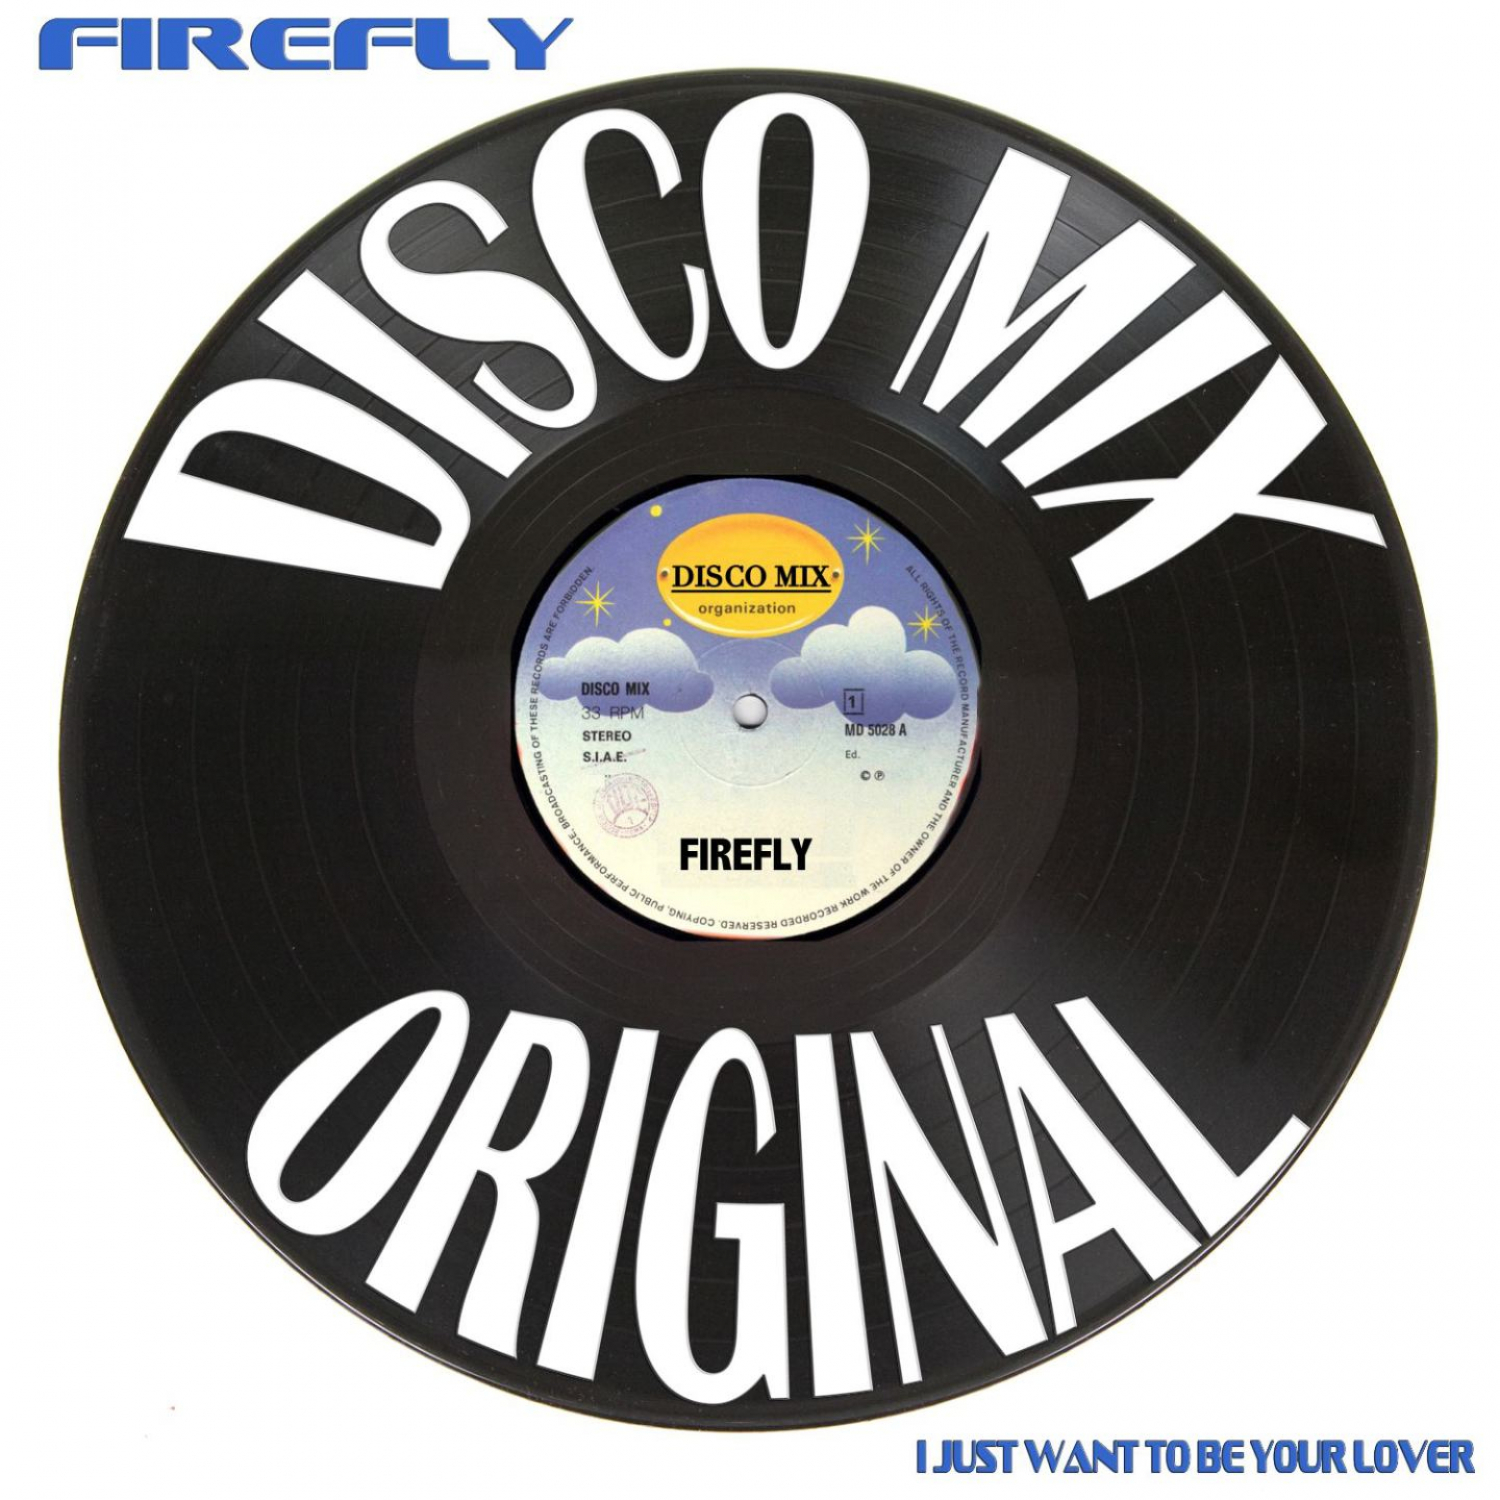 Firefly - I Just Want to Be Your Lover (Original Mix)